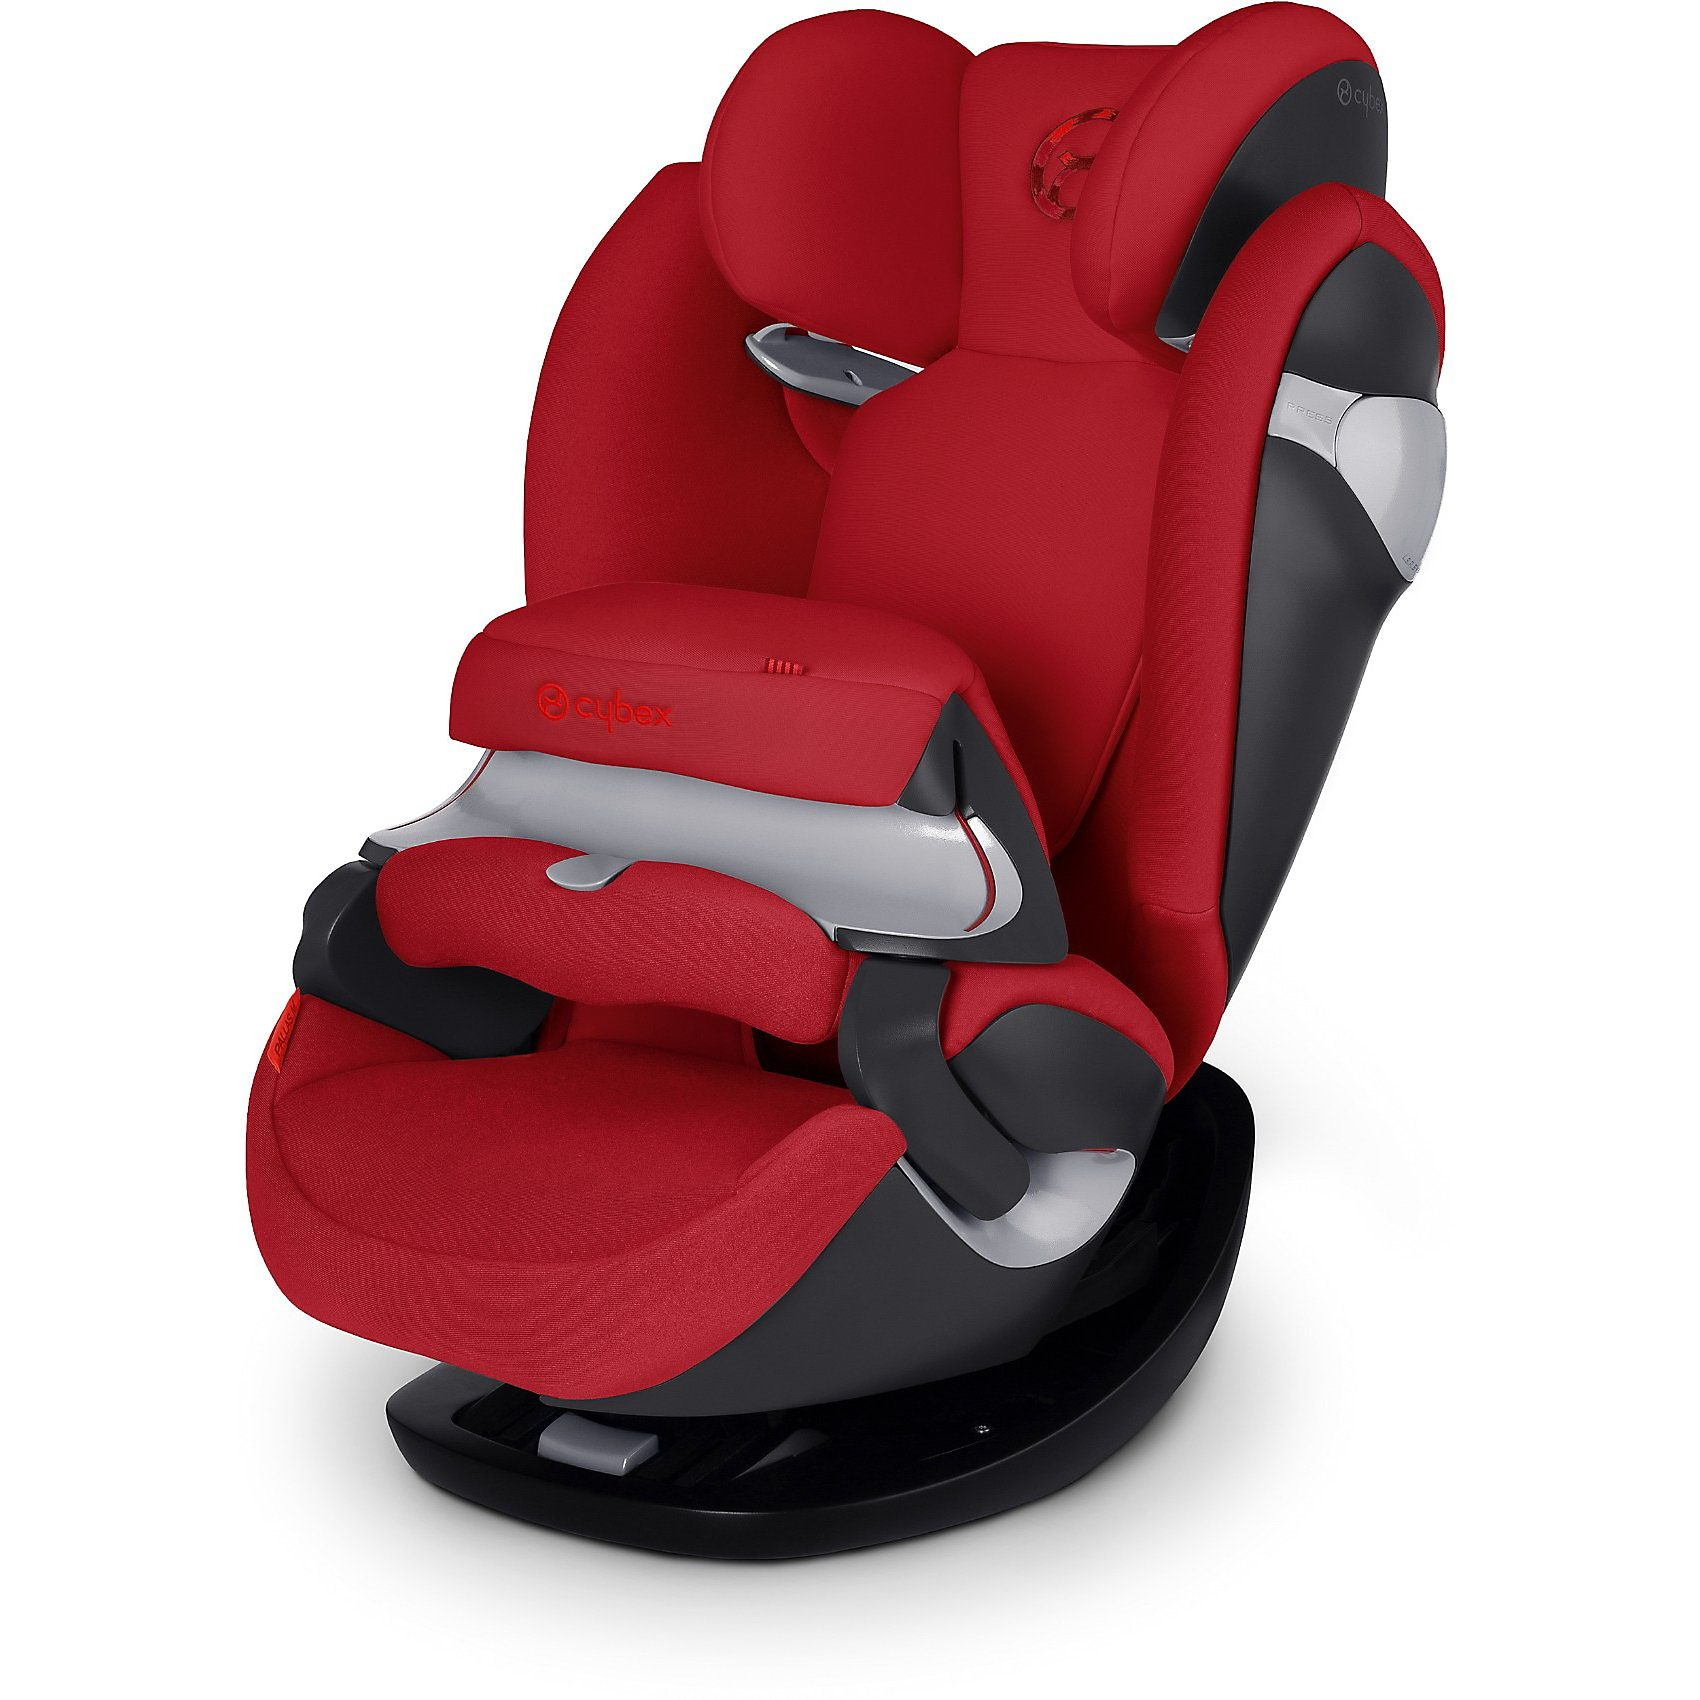 Cybex Auto-Kindersitz Pallas M, Hot & Spicy, 2015